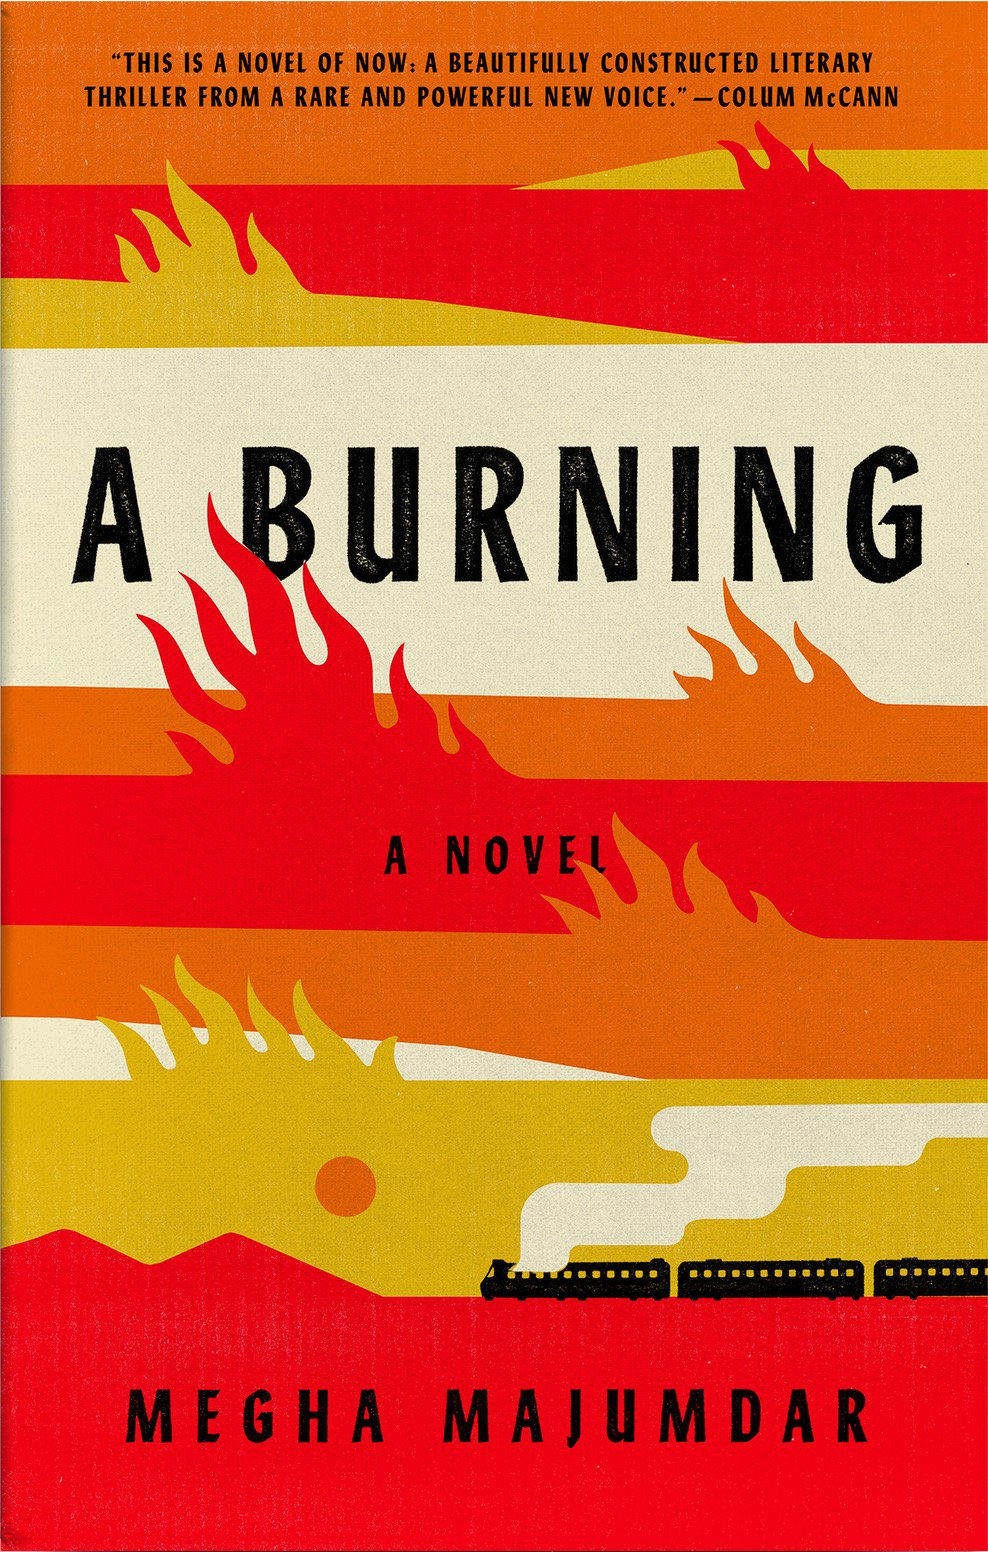 Megha Majumdar - A Burning